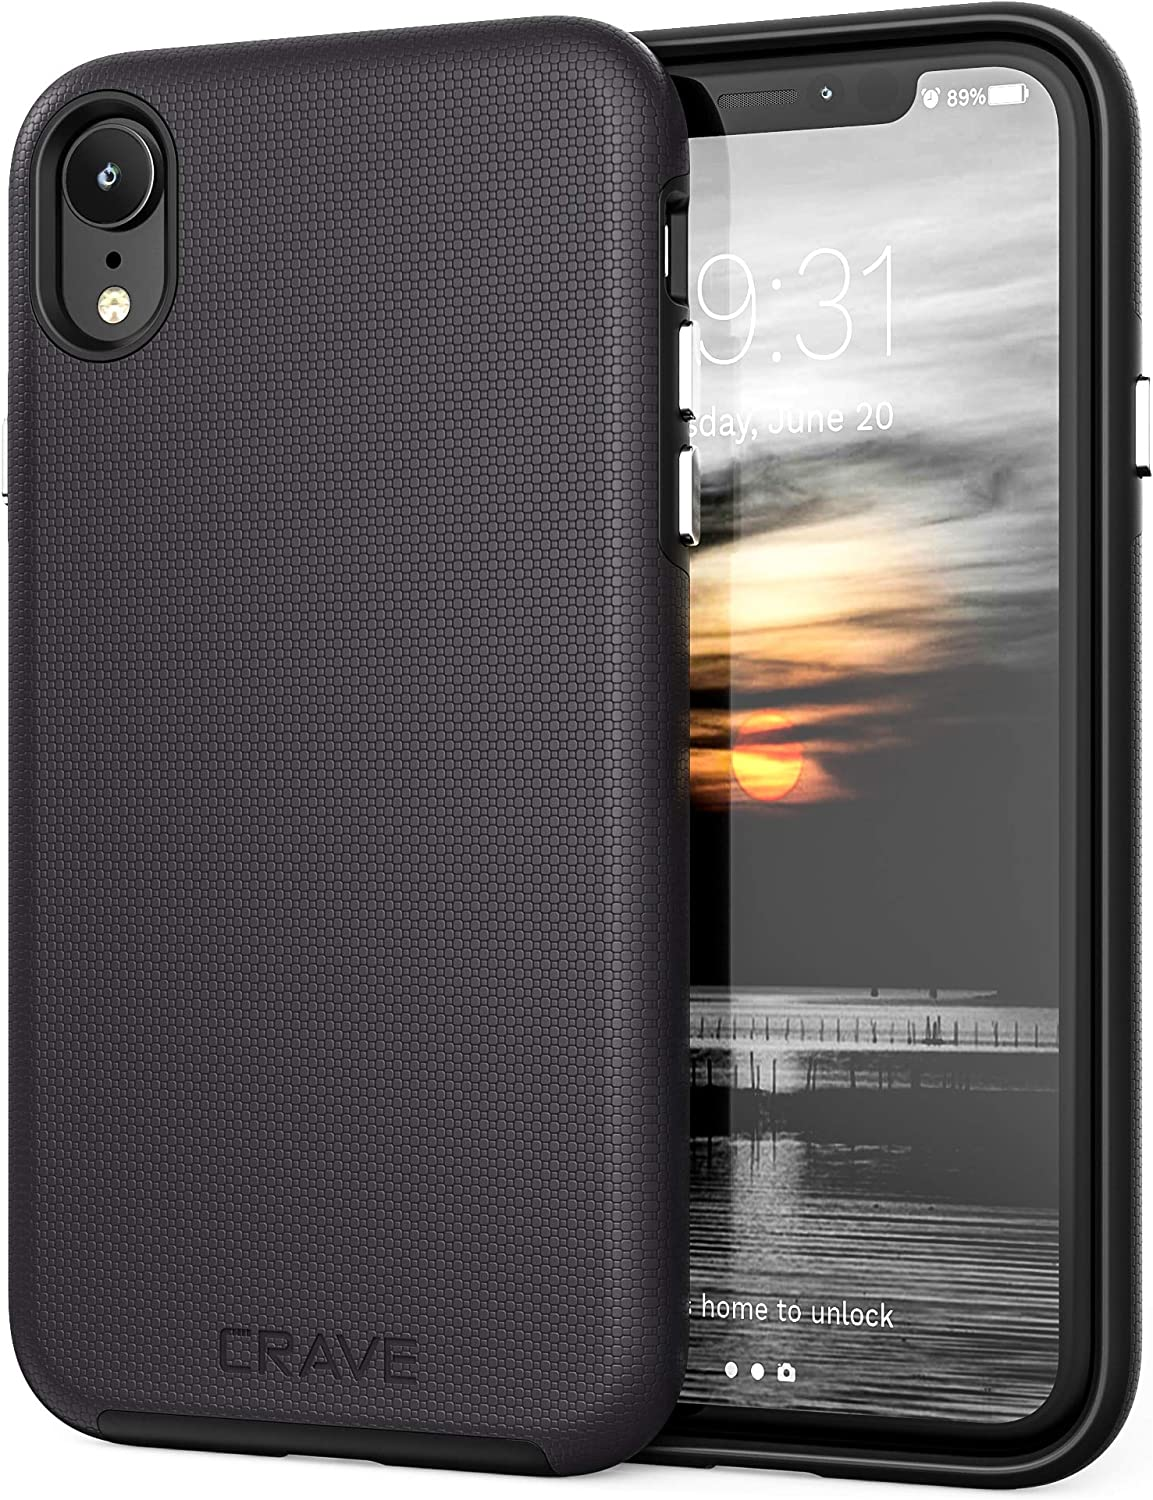 Crave iPhone XR Case, Dual Guard Protection Series Case for Apple iPhone XR (6.1 inch) - Black